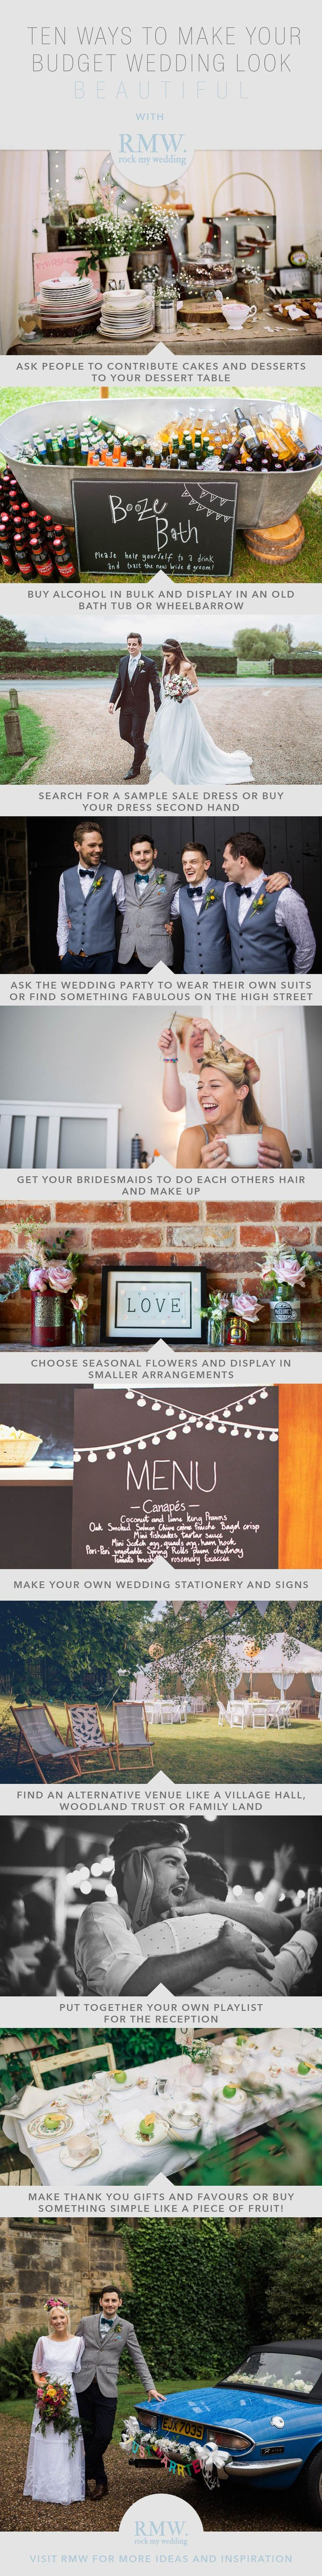 10 ways to make your budget wedding look beautiful